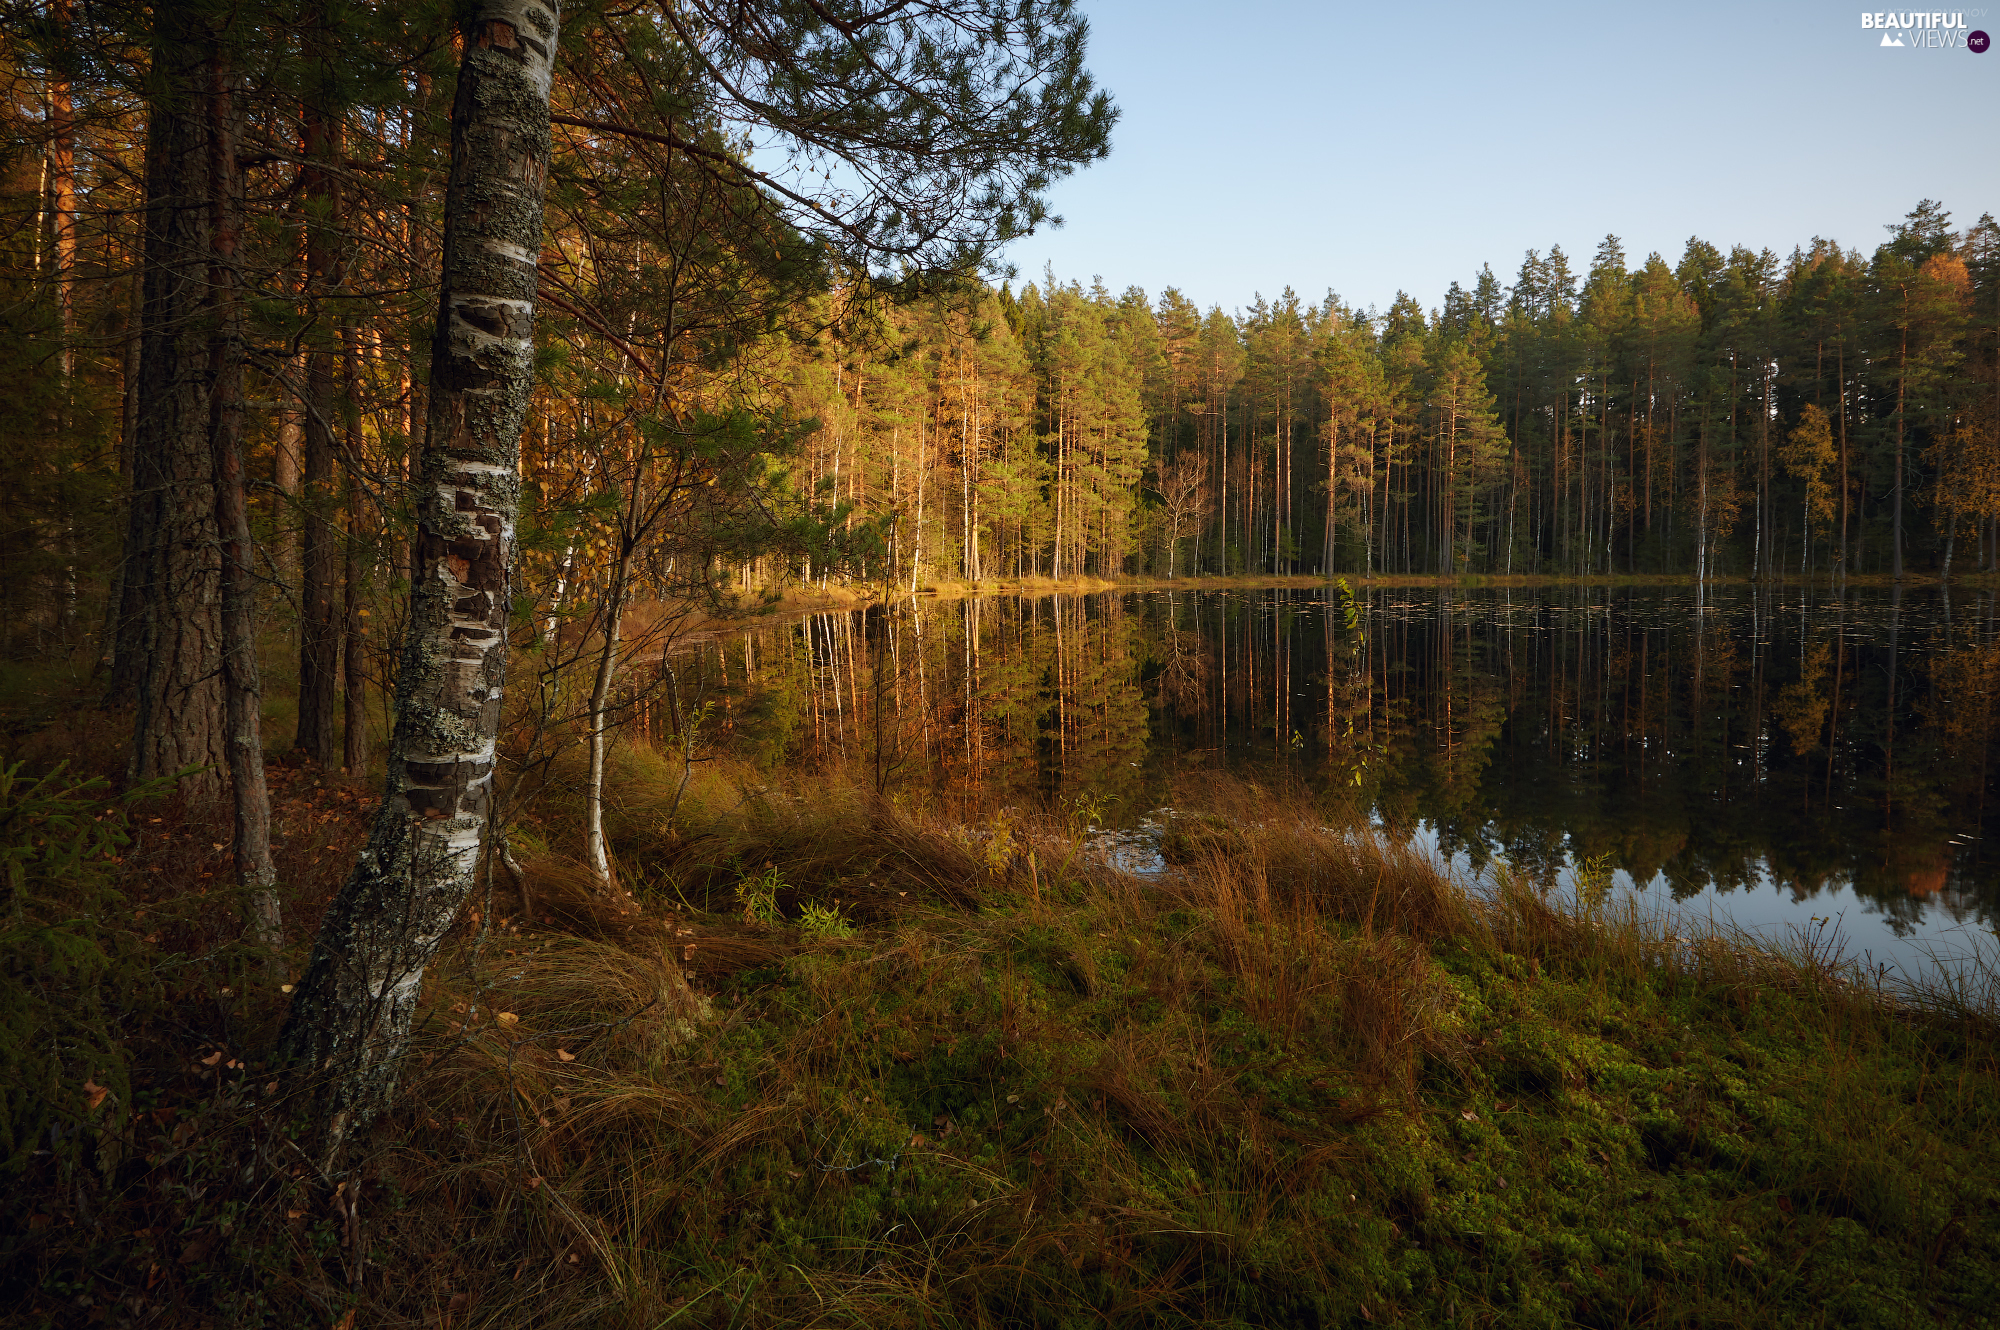 forest, autumn, trees, viewes, lake